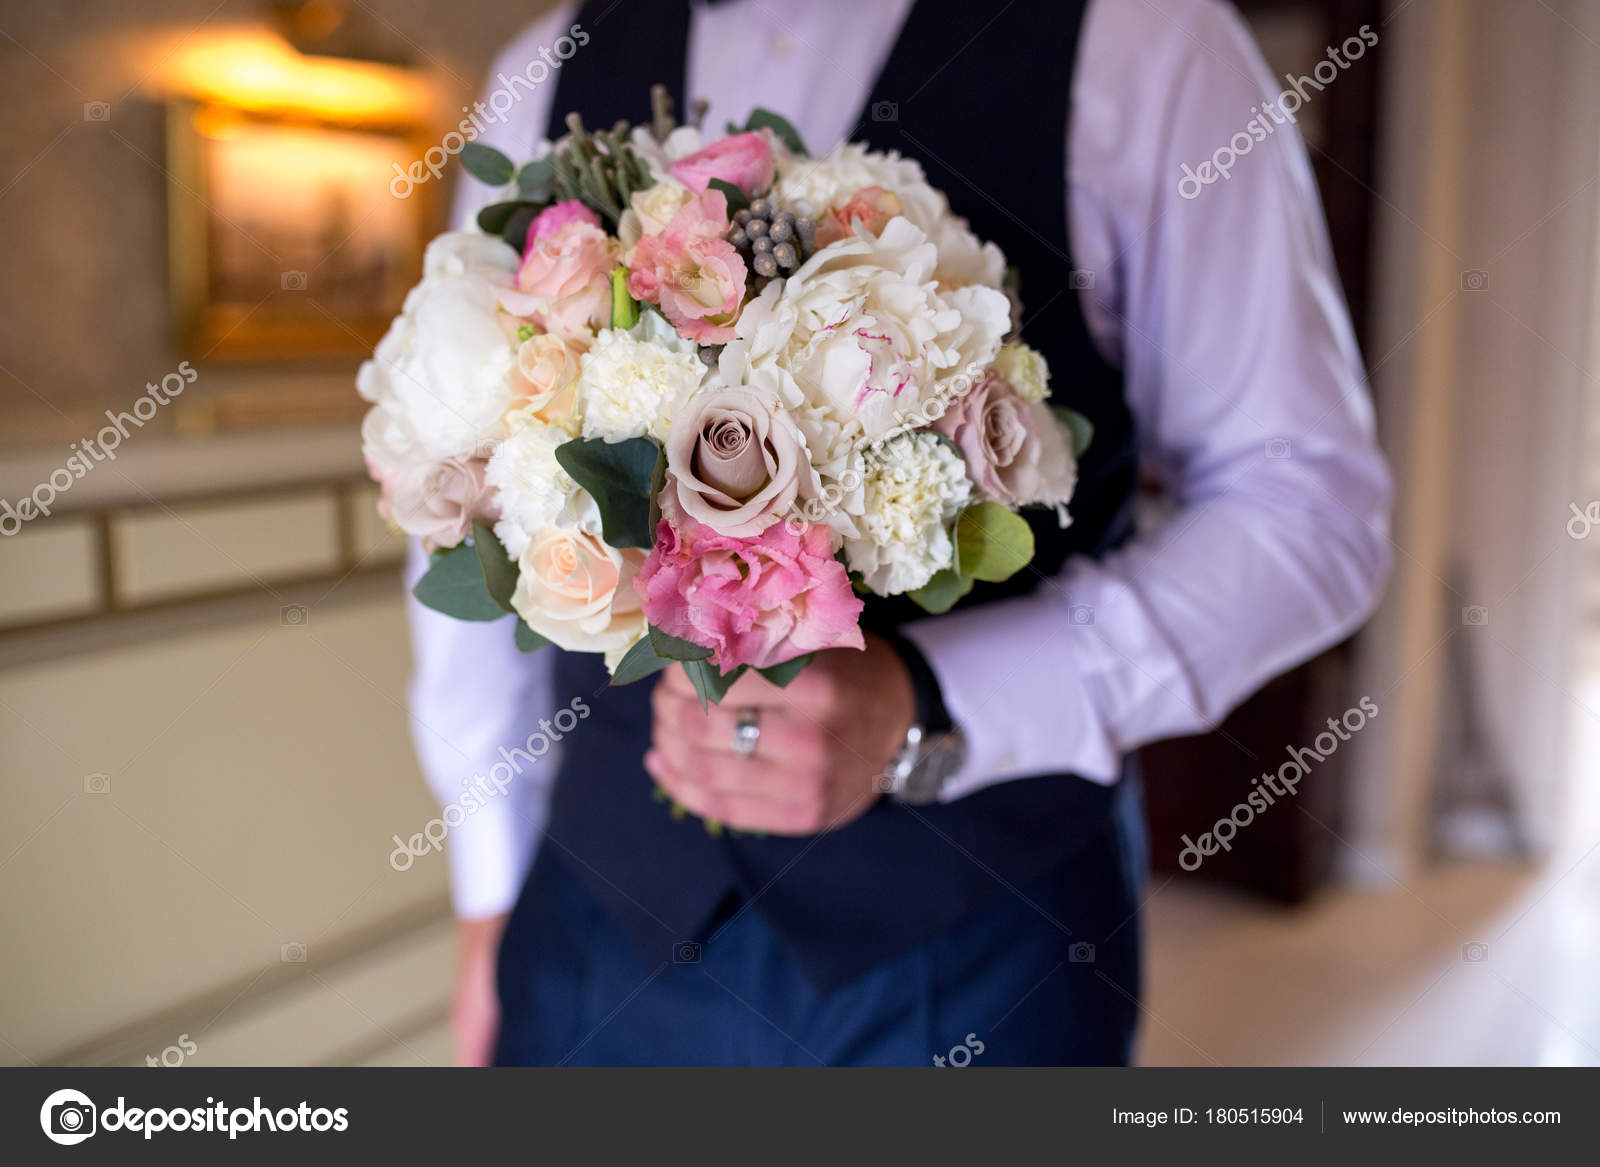 Man with flower bouquet stock photo olgaosa 180515904 man with flower bouquet stock photo izmirmasajfo